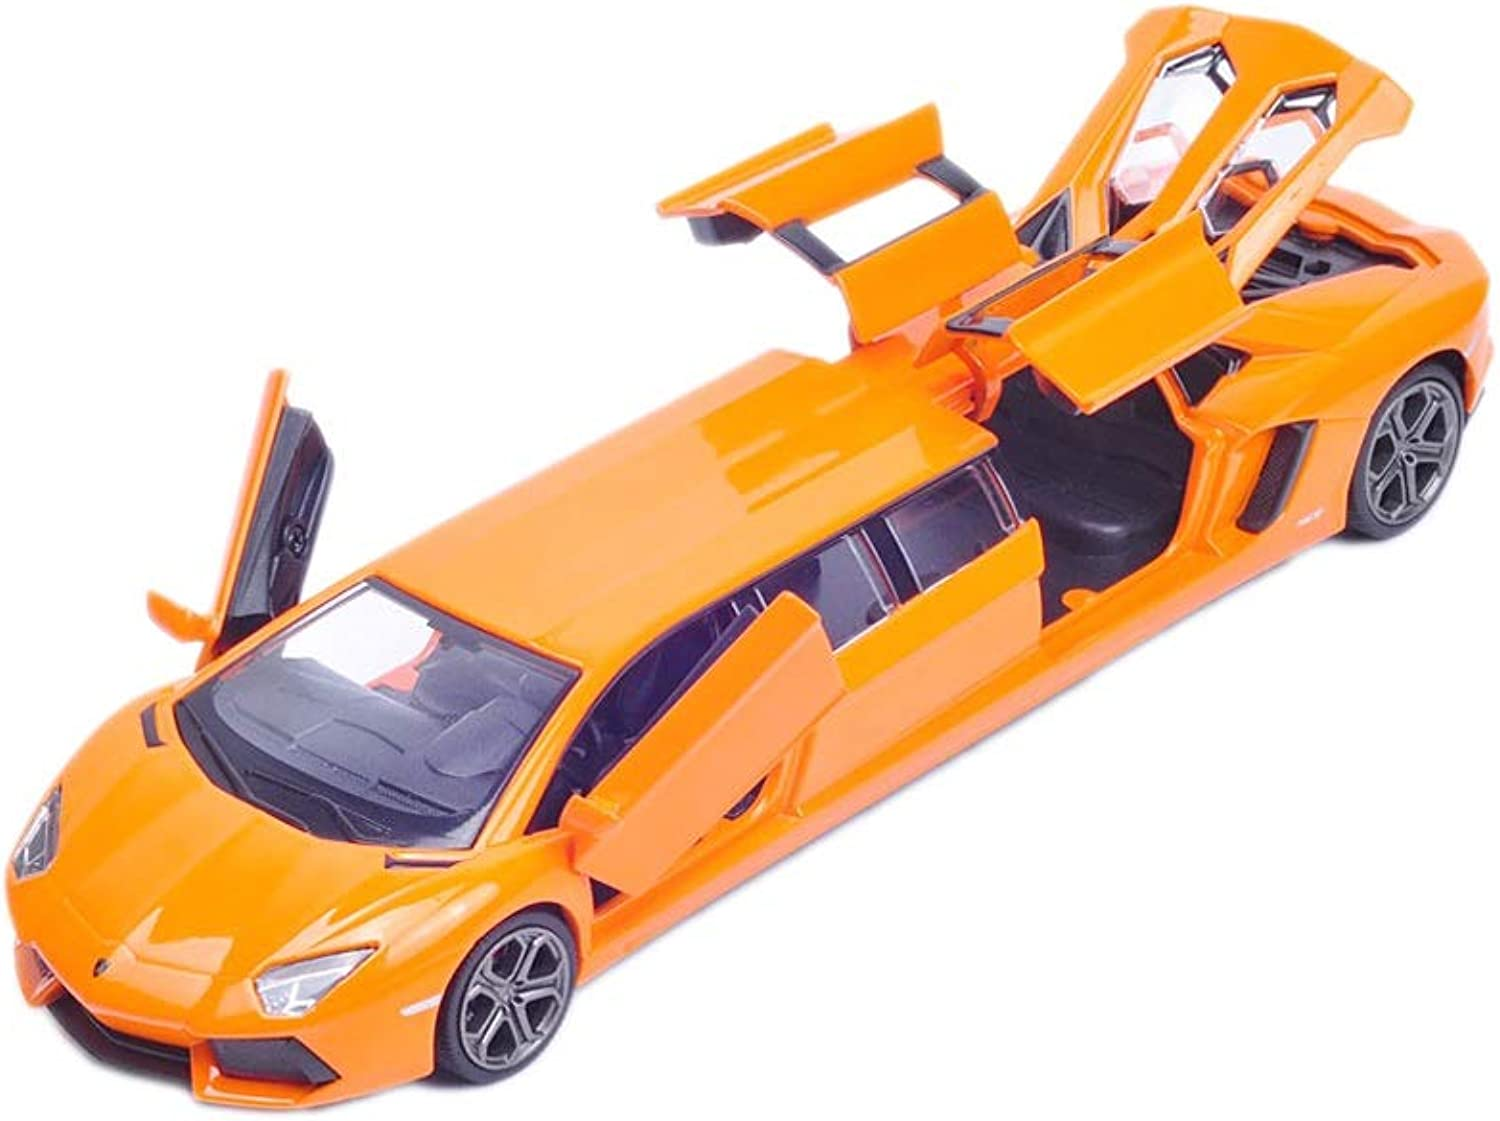 JXXDDQ Car Model Toy Collection Decorative Model 1 32 Extended Version Alloy Car Boy Gift (color   orange)